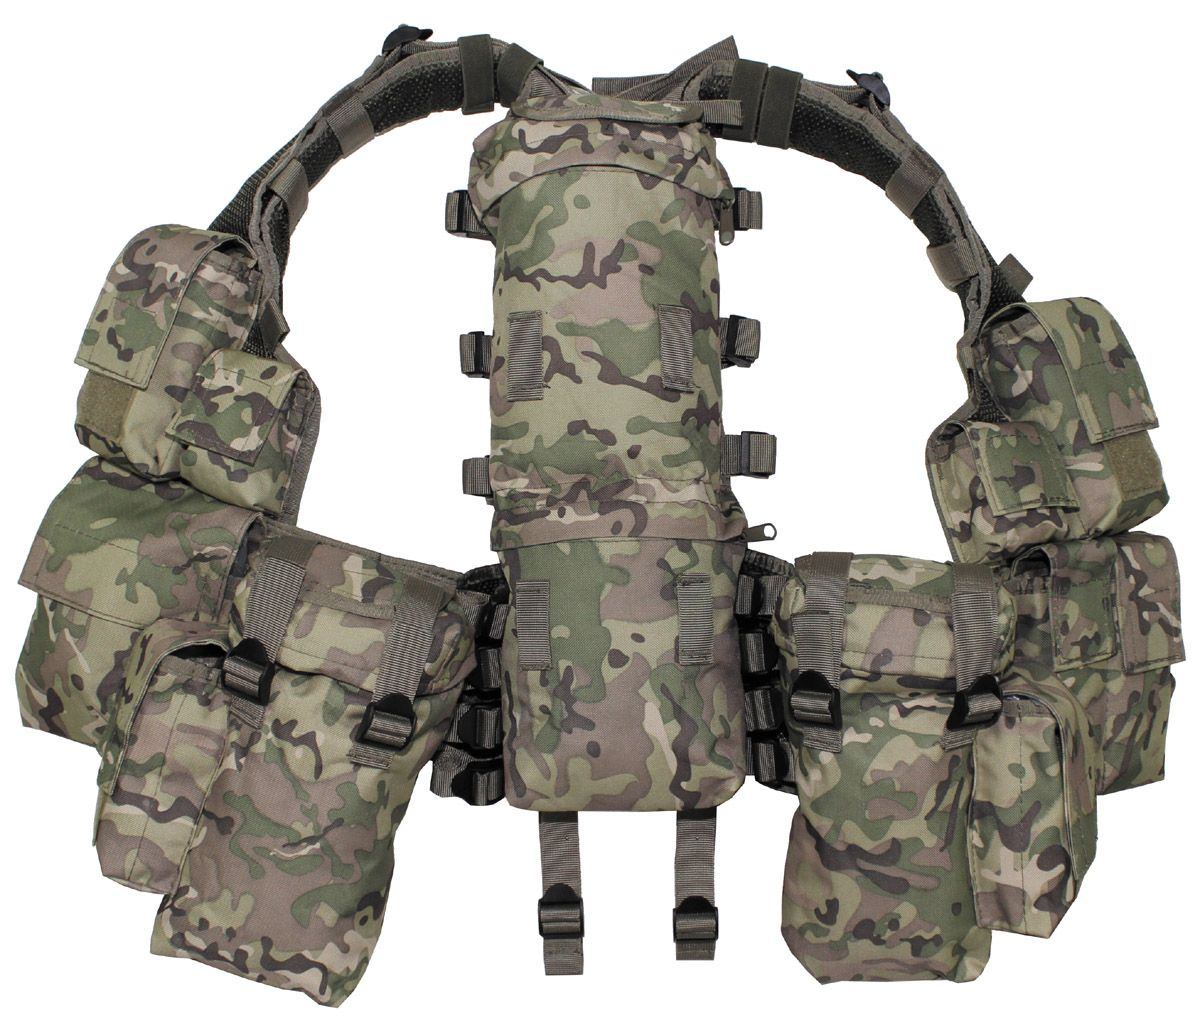 Image of Tactical Weste, div. Taschen, operation-camo